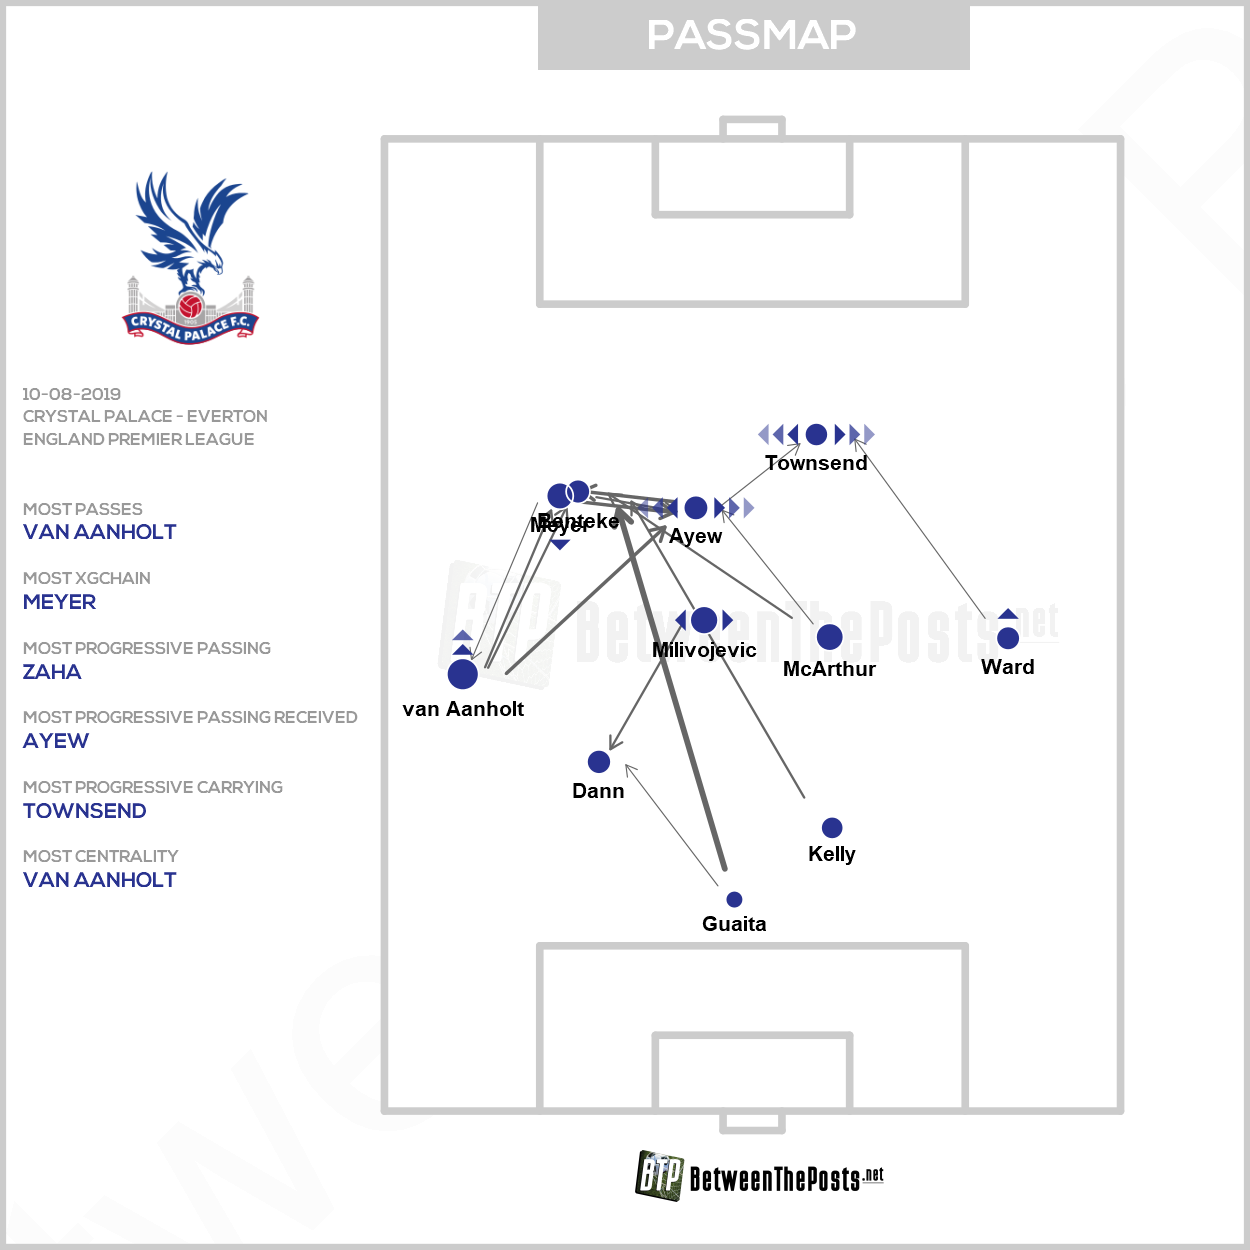 Passmap Crystal Palace Everton 0-0 Premier League